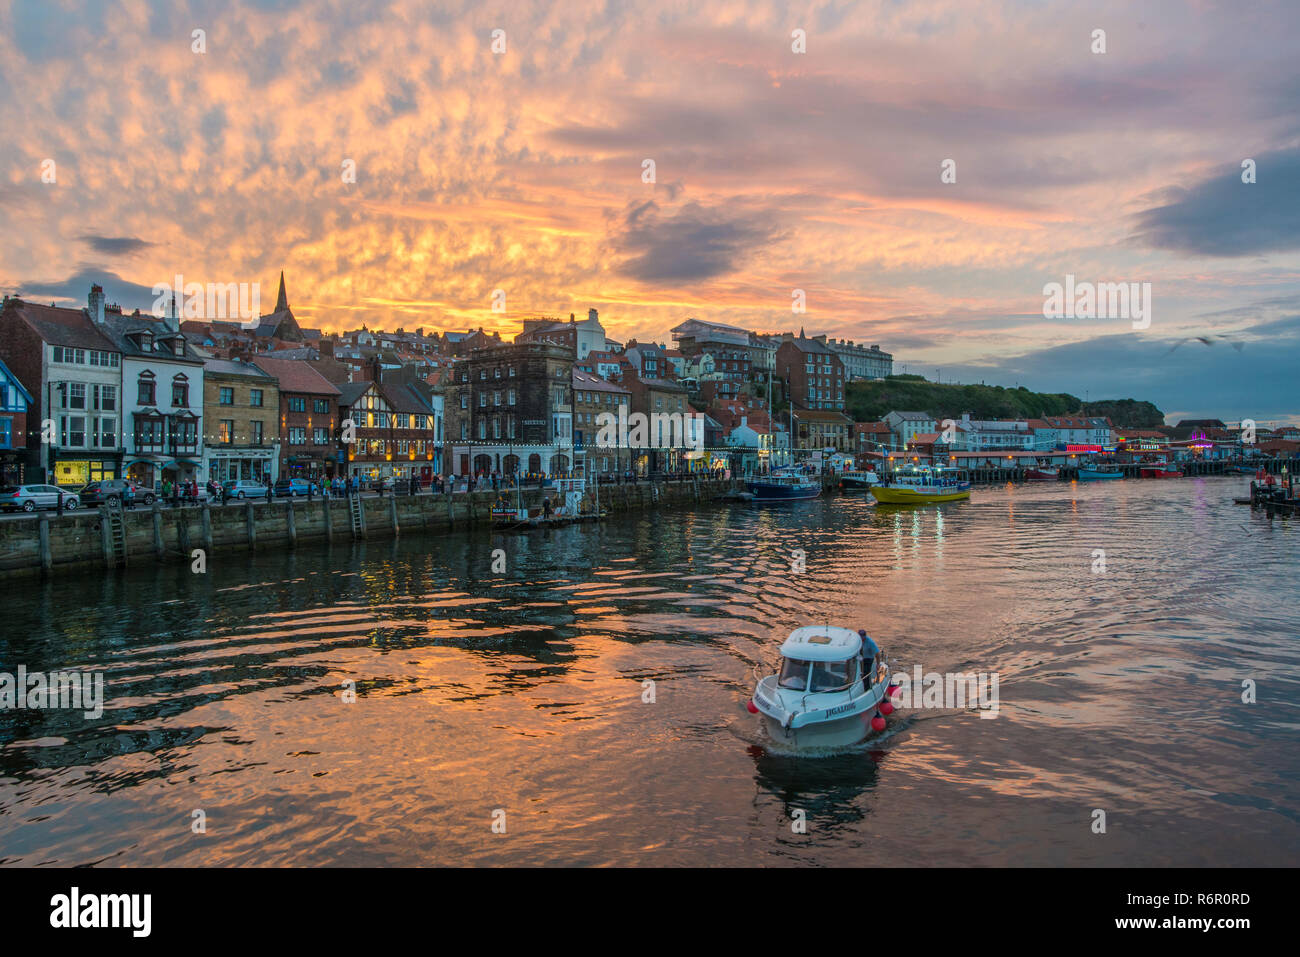 Whitby Harbour. Whitby is a seaside town, port and civil parish in the Borough of Scarborough and English county of North Yorkshire, August 2017 Stock Photo